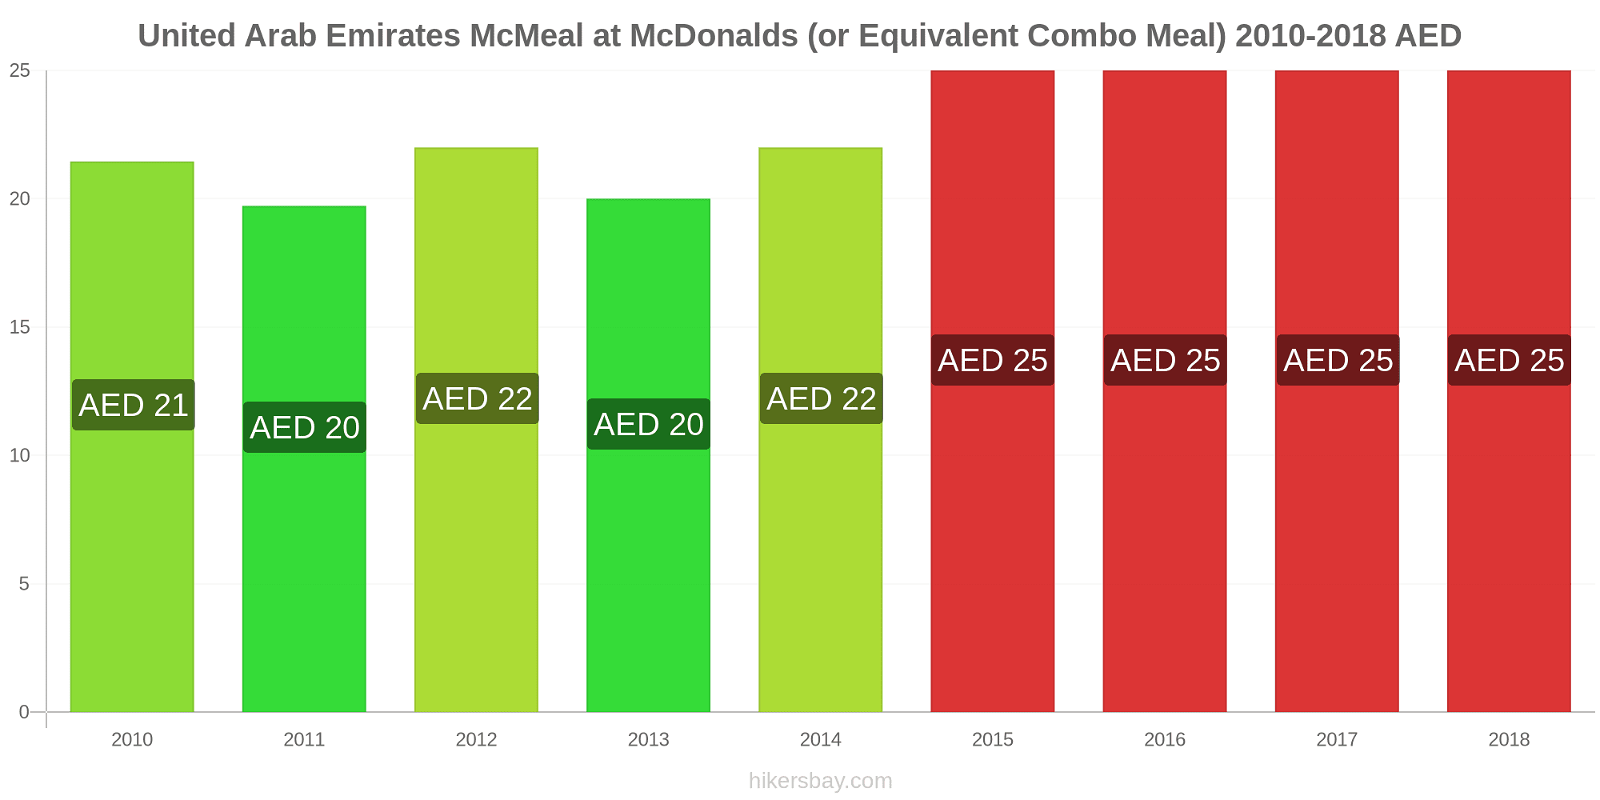 United Arab Emirates price changes McMeal at McDonalds (or Equivalent Combo Meal) hikersbay.com